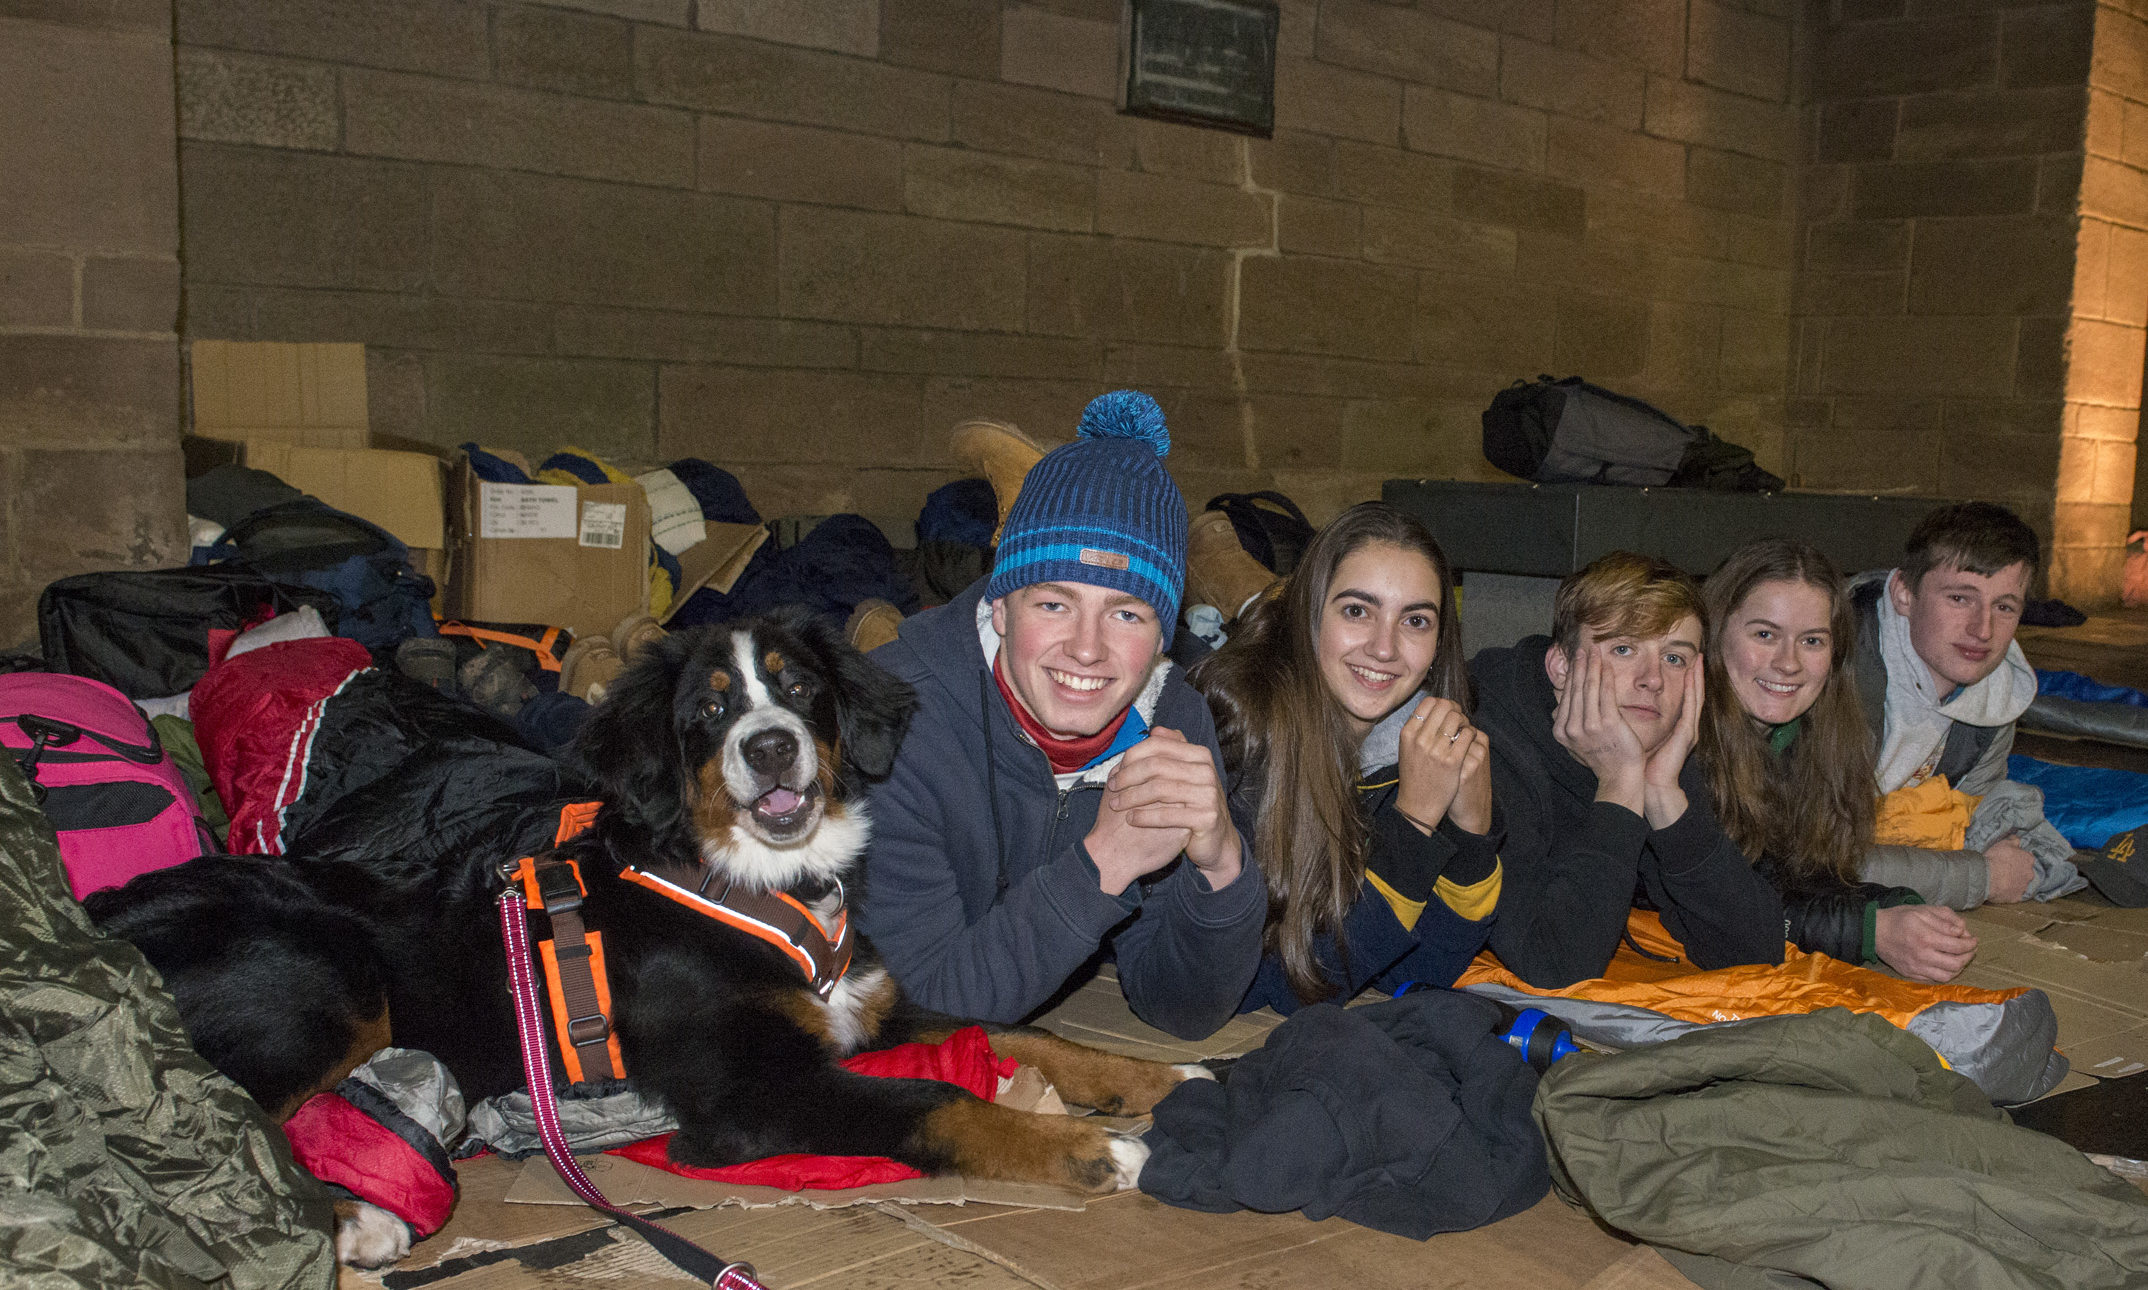 Students from Strathallan brave the elements with Burmese mountain dog Ella.